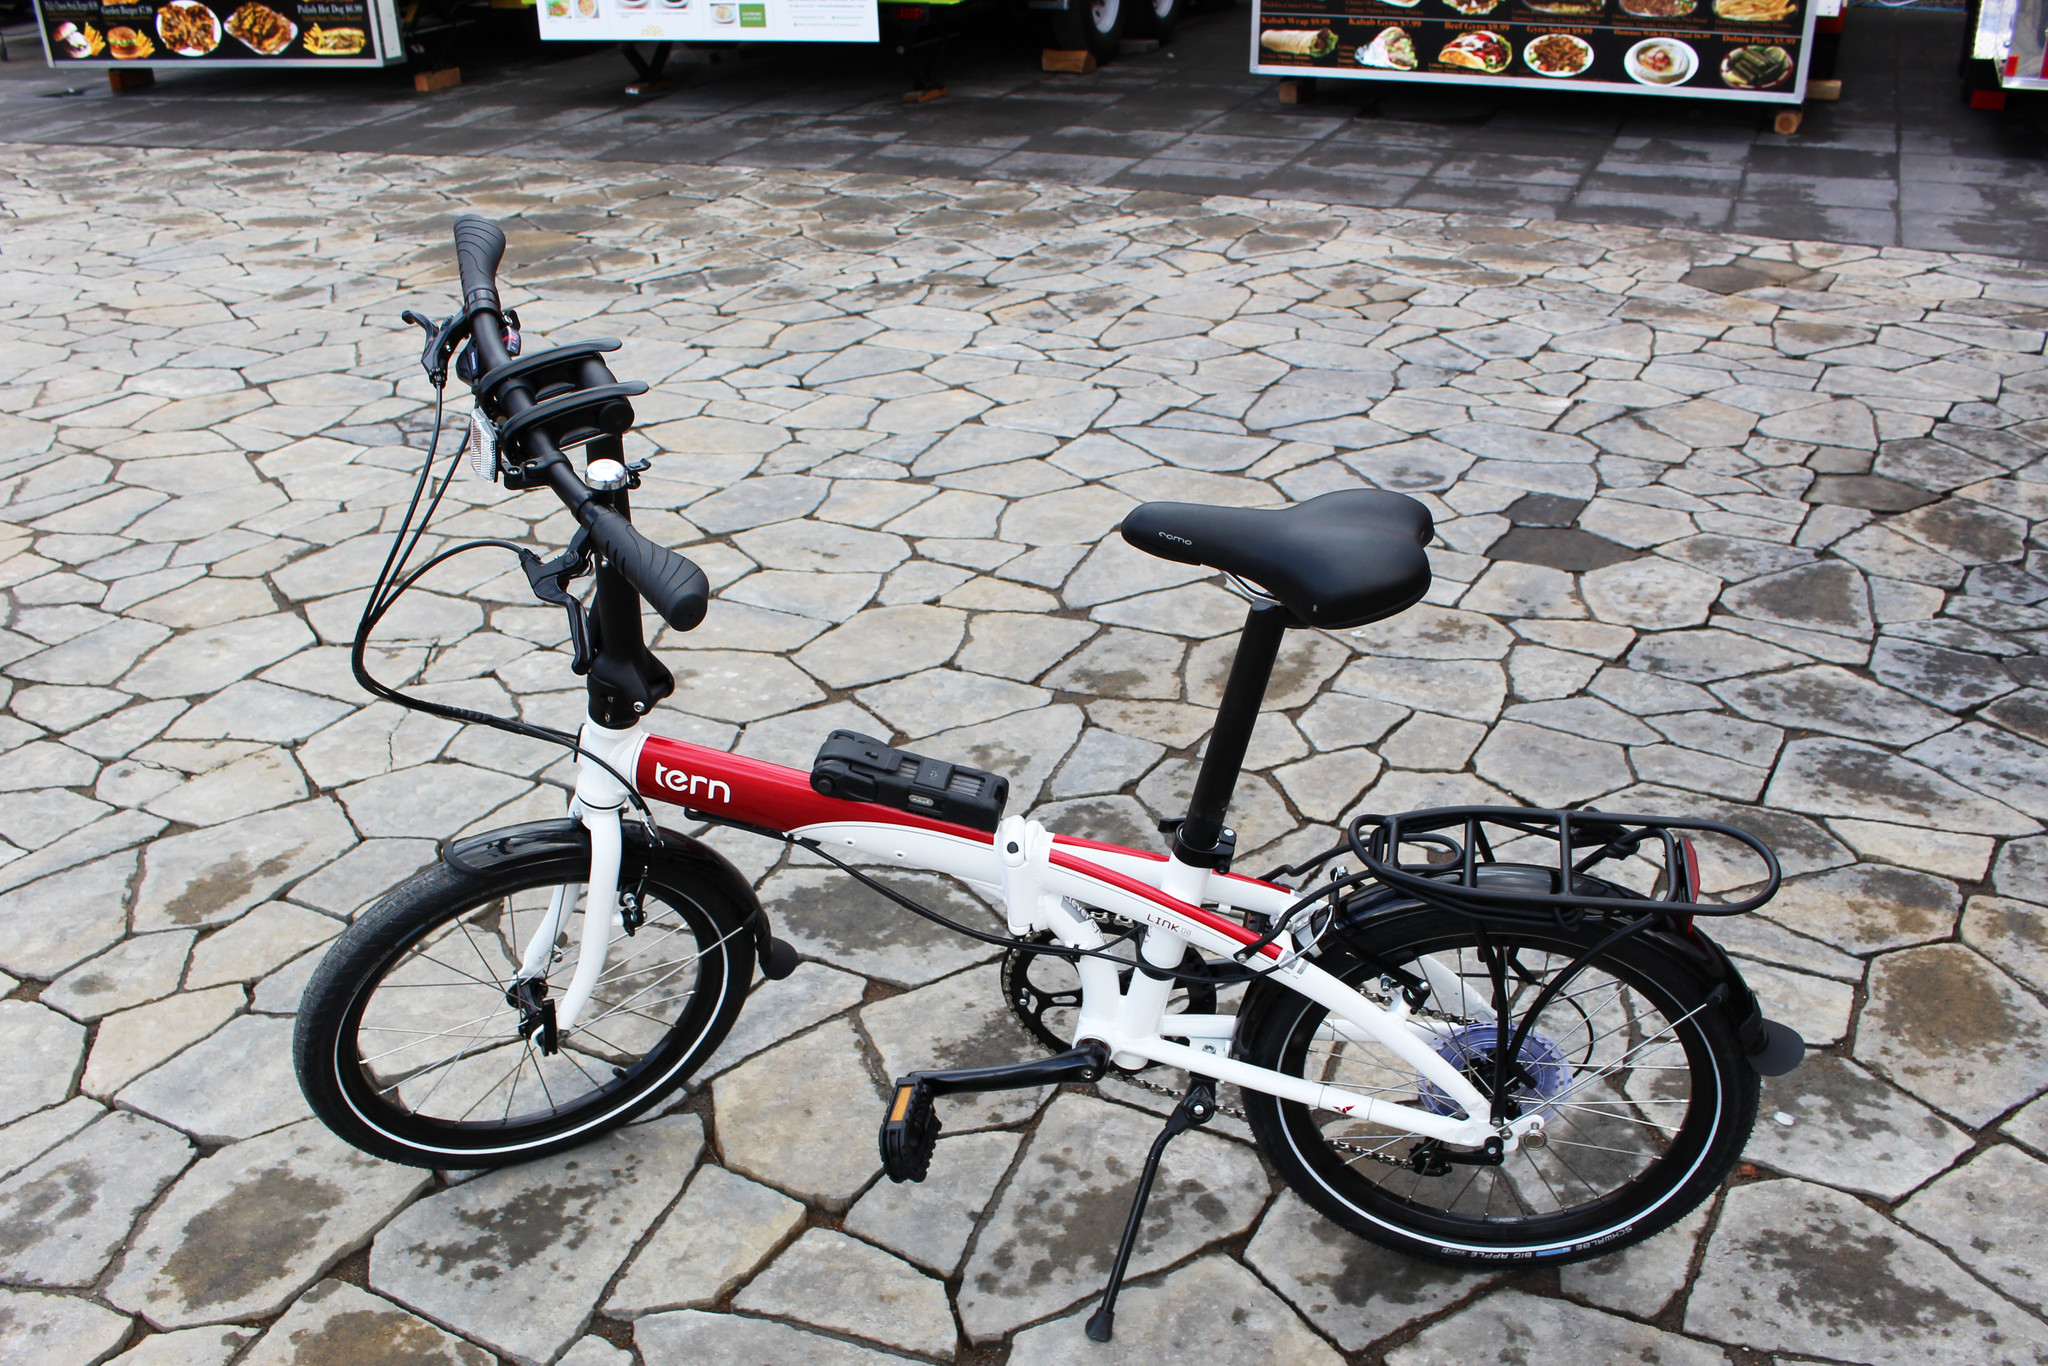 White and Red Tern Link D8 Folding Bike